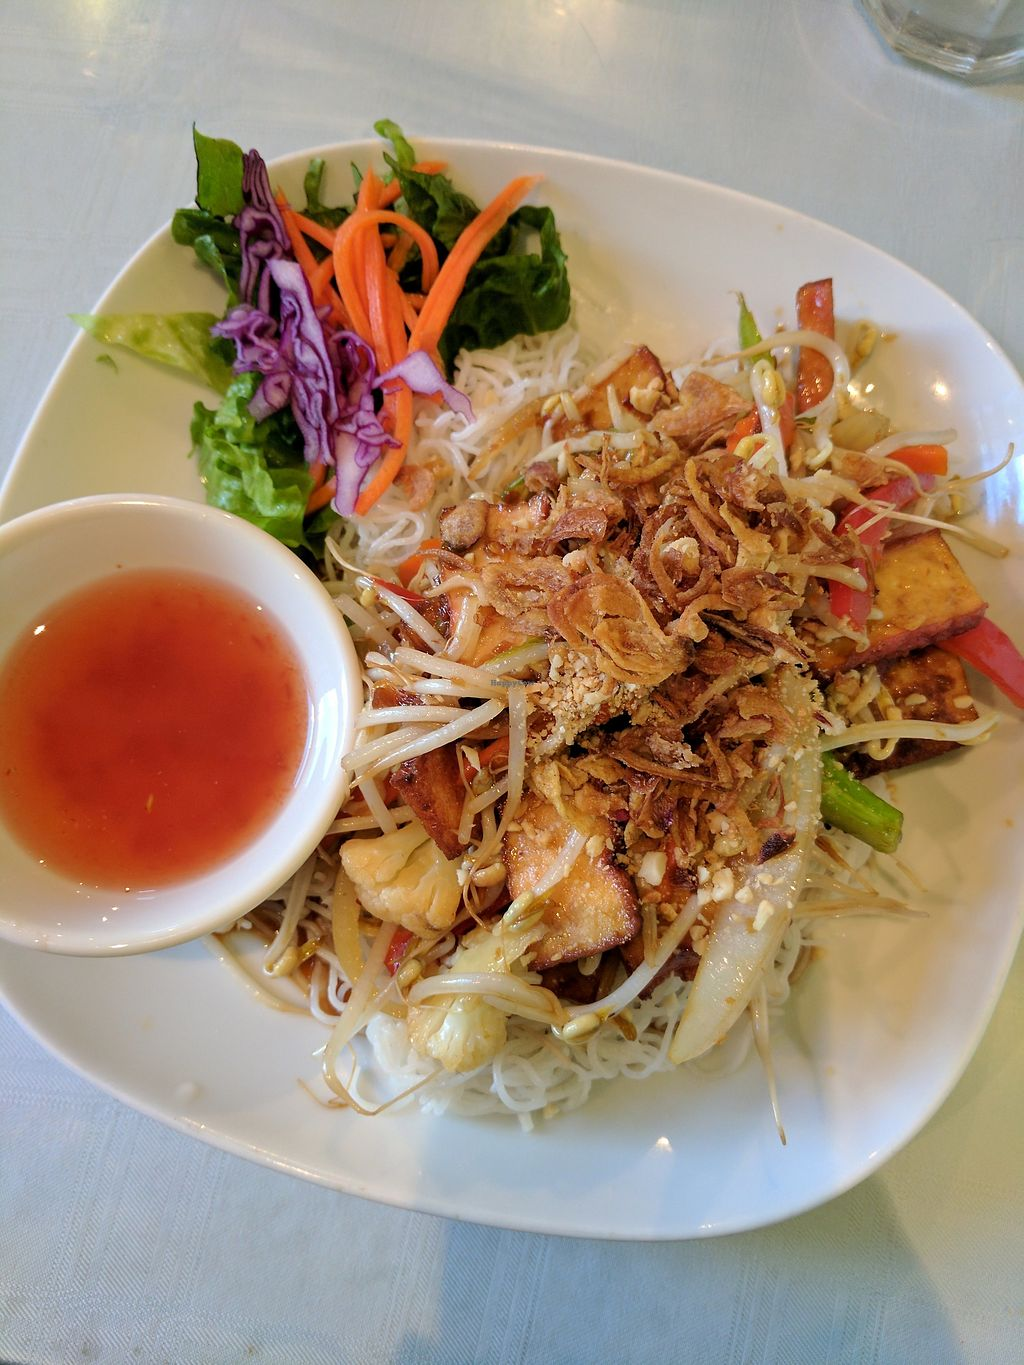 "Photo of Tamarind Vietnamese Grill and Noodle House  by <a href=""/members/profile/lmcc"">lmcc</a> <br/>Lemongrass tofu vermicelli  <br/> July 5, 2017  - <a href='/contact/abuse/image/49030/276900'>Report</a>"